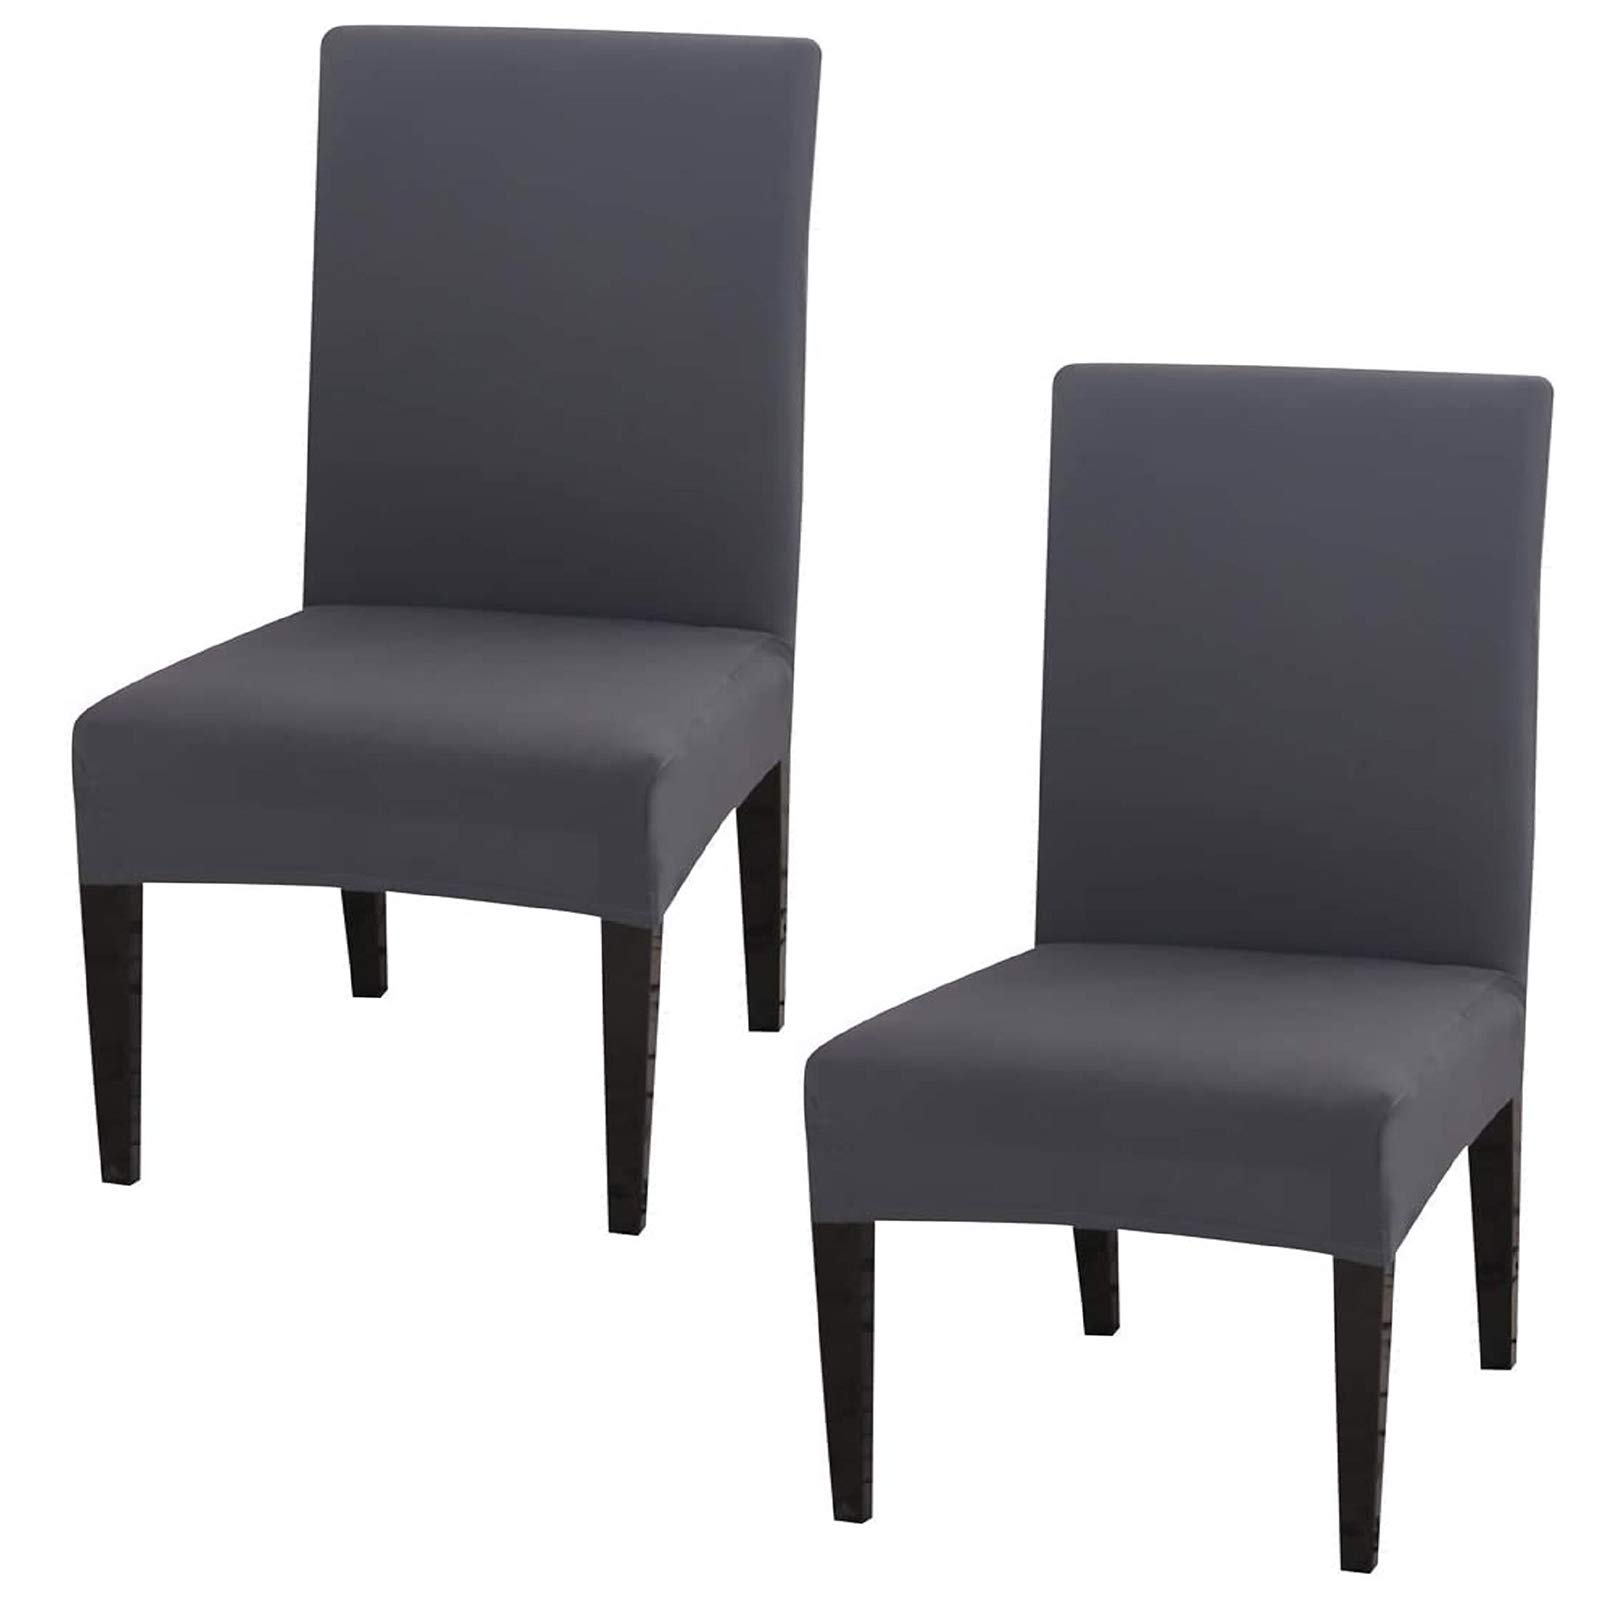 Inmozata Dining Chair Covers High Back Polyester Spandex Elastic Dining Chair Slipcovers Protector Kitchen Chair Seat Covers Washable Removable Grey Set Of 2 Buy Online In India At Desertcart In Productid 169371214